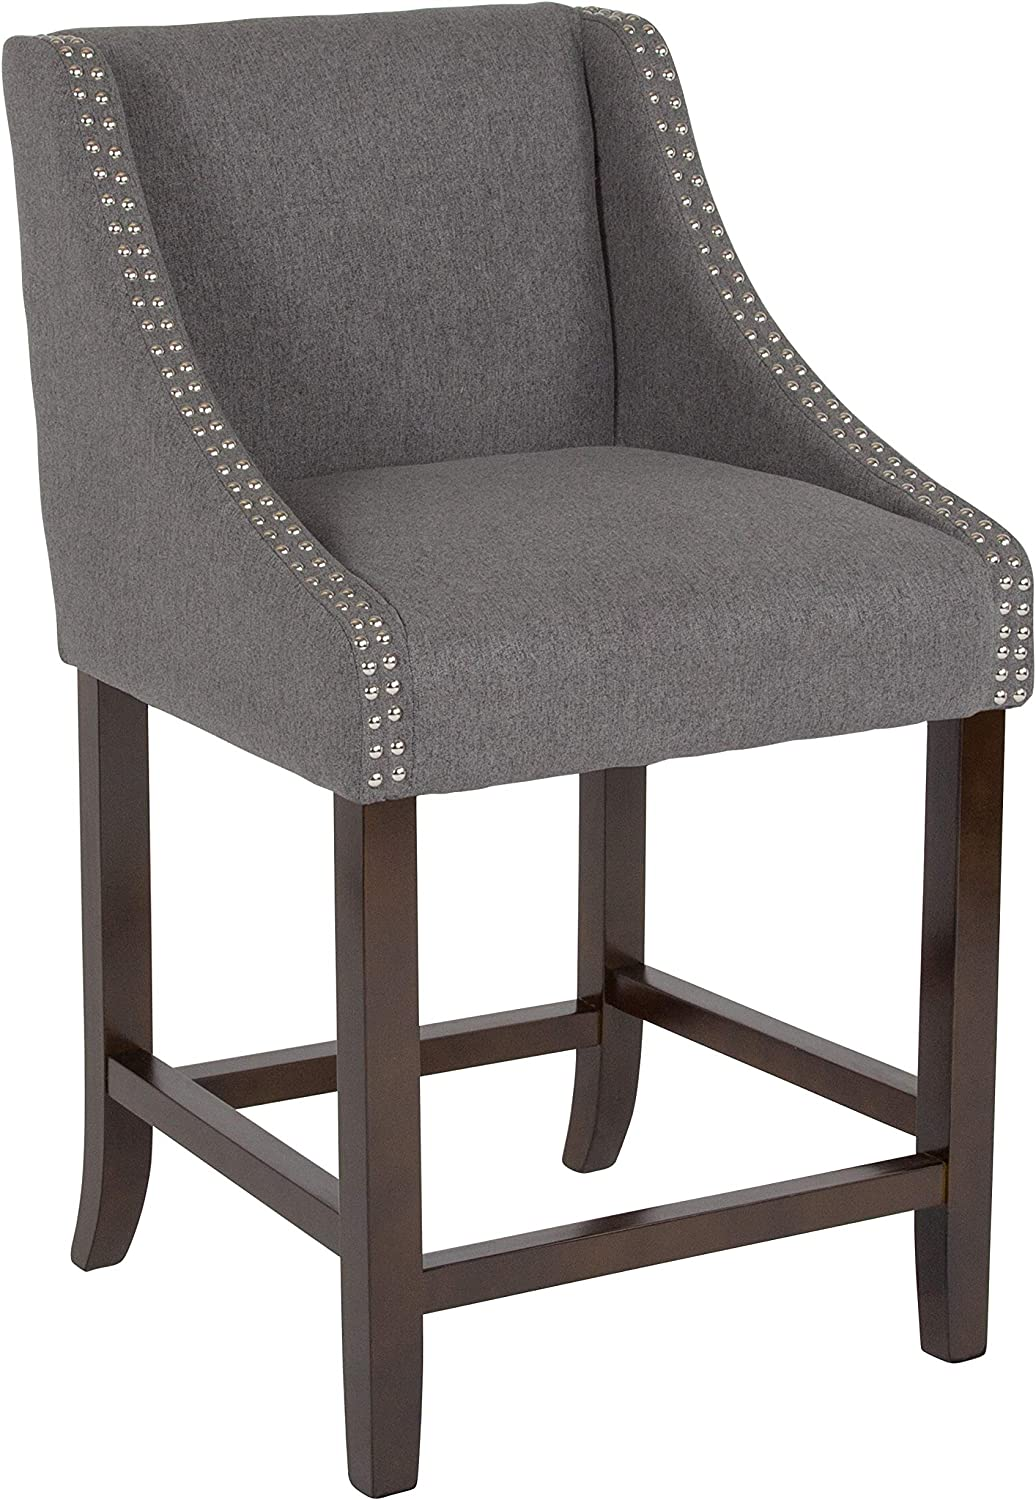 "Flash Furniture Carmel Series 24"" High Transitional Walnut Counter Height Stool with Accent Nail Trim in Dark Gray Fabric"